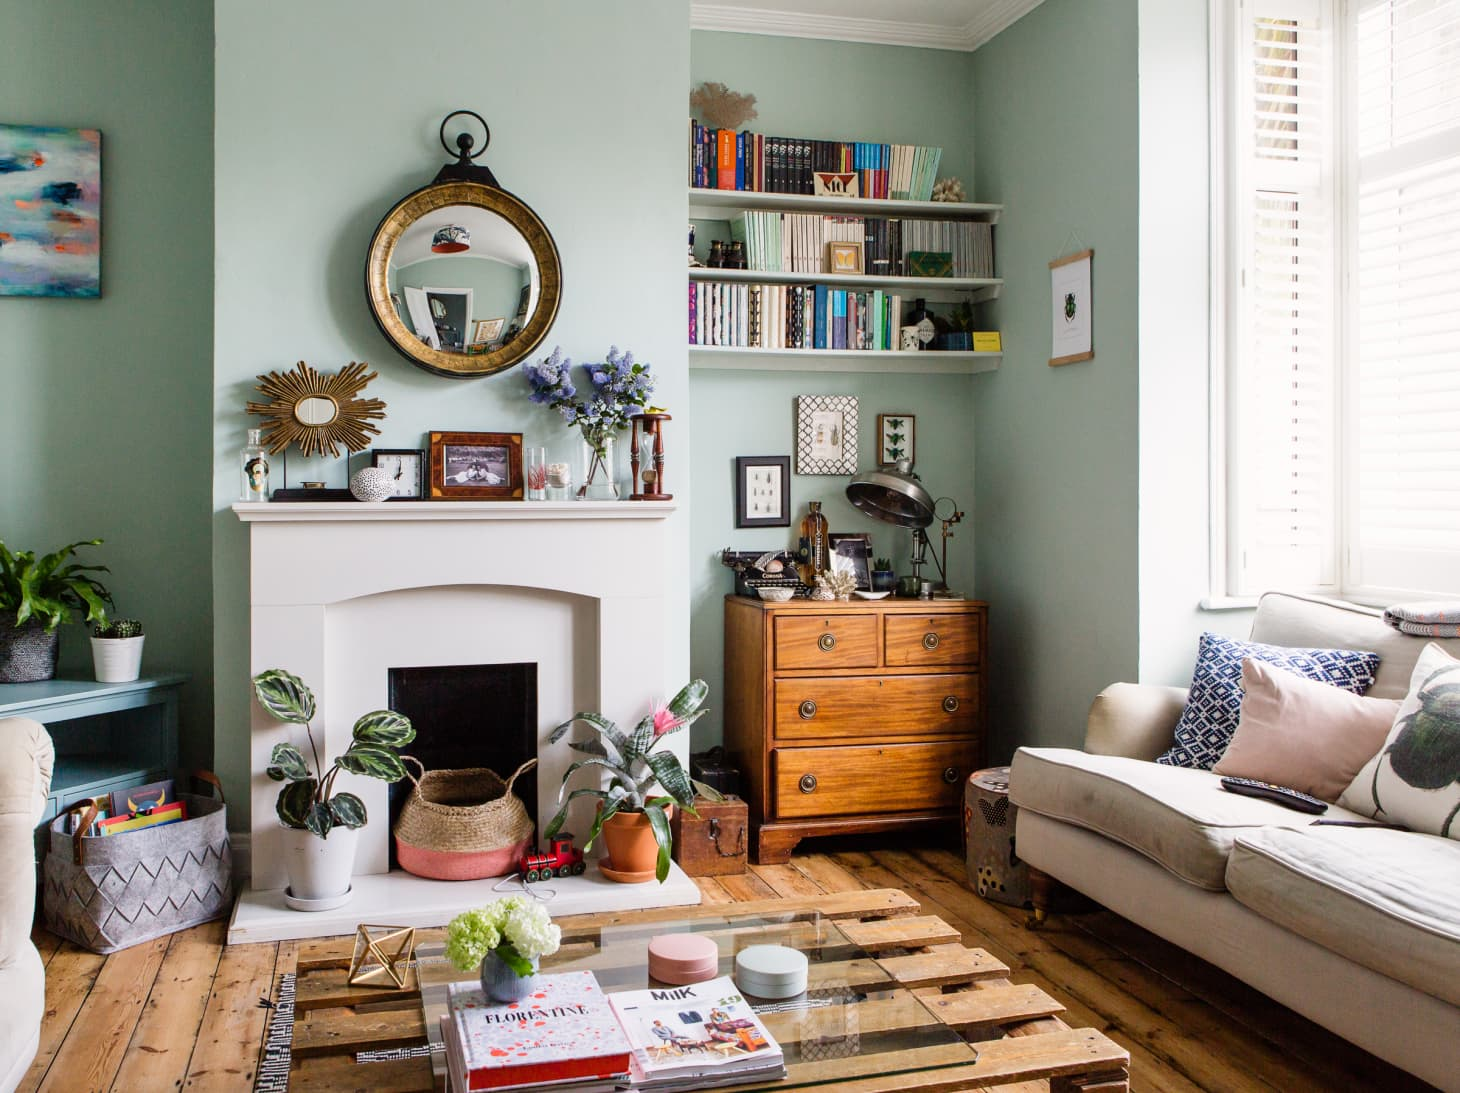 30 Small Living Room Decorating & Design Ideas - How to ...